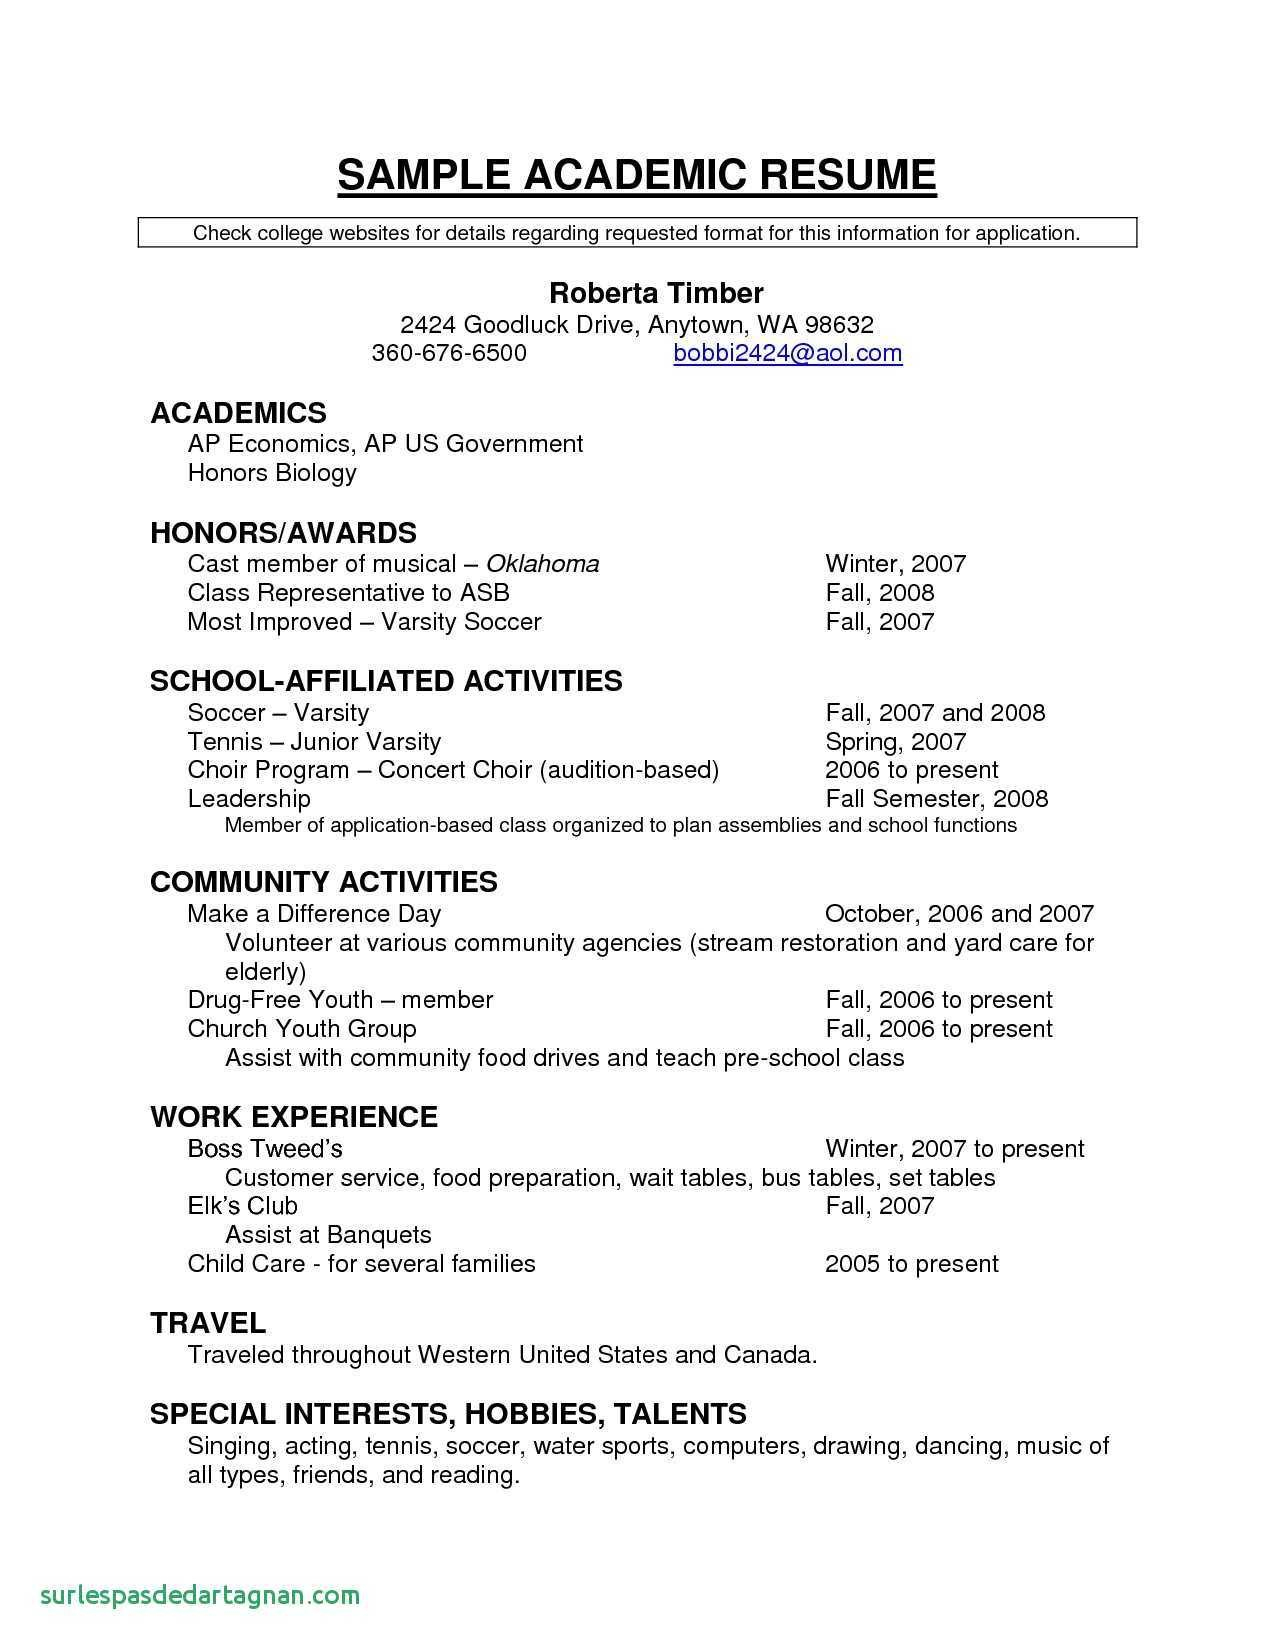 College Student Resume Sample - Student Resume Samples Inspirational Unique Resume for Highschool